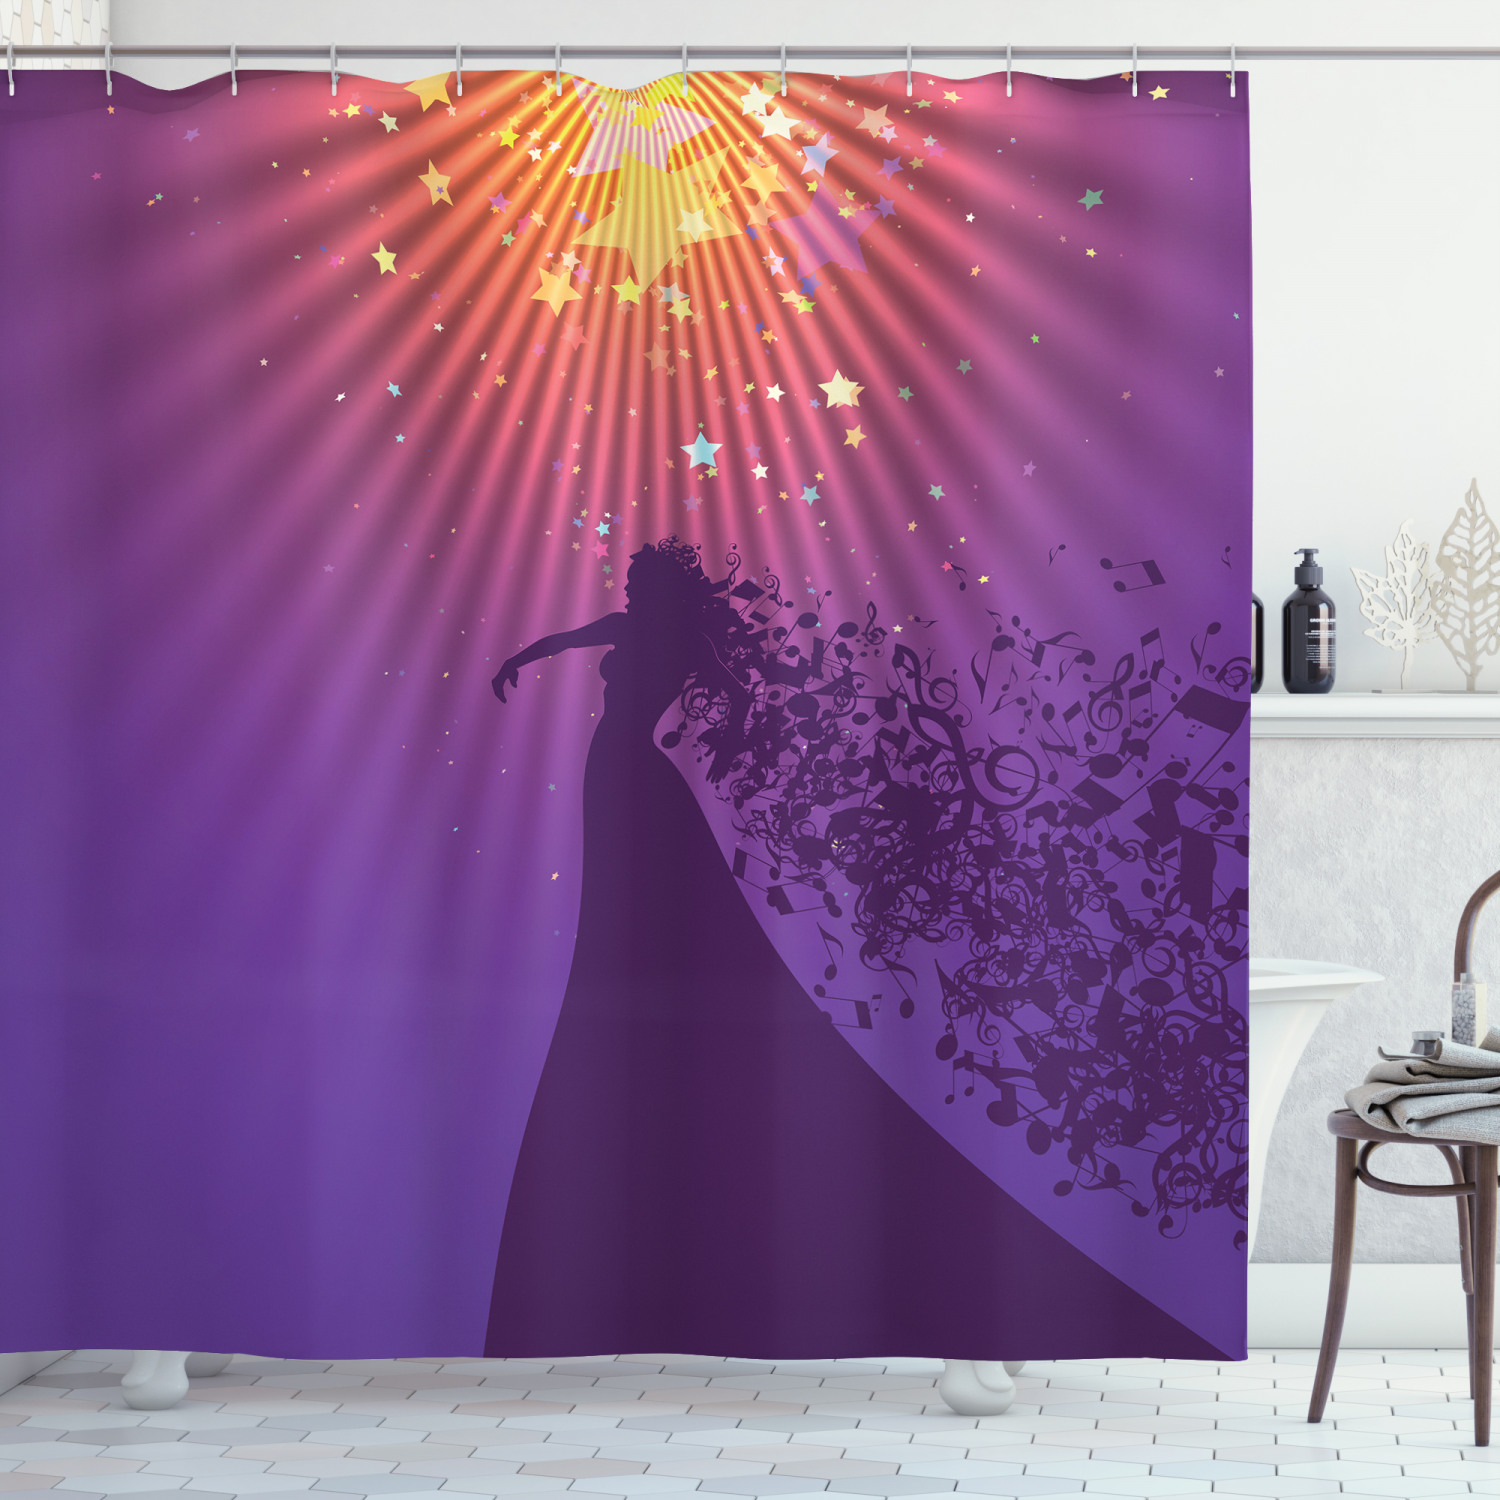 diva shower curtain silhouette of woman opera singer singing at the stage with hair like musical notes fabric bathroom set with hooks 69w x 70l